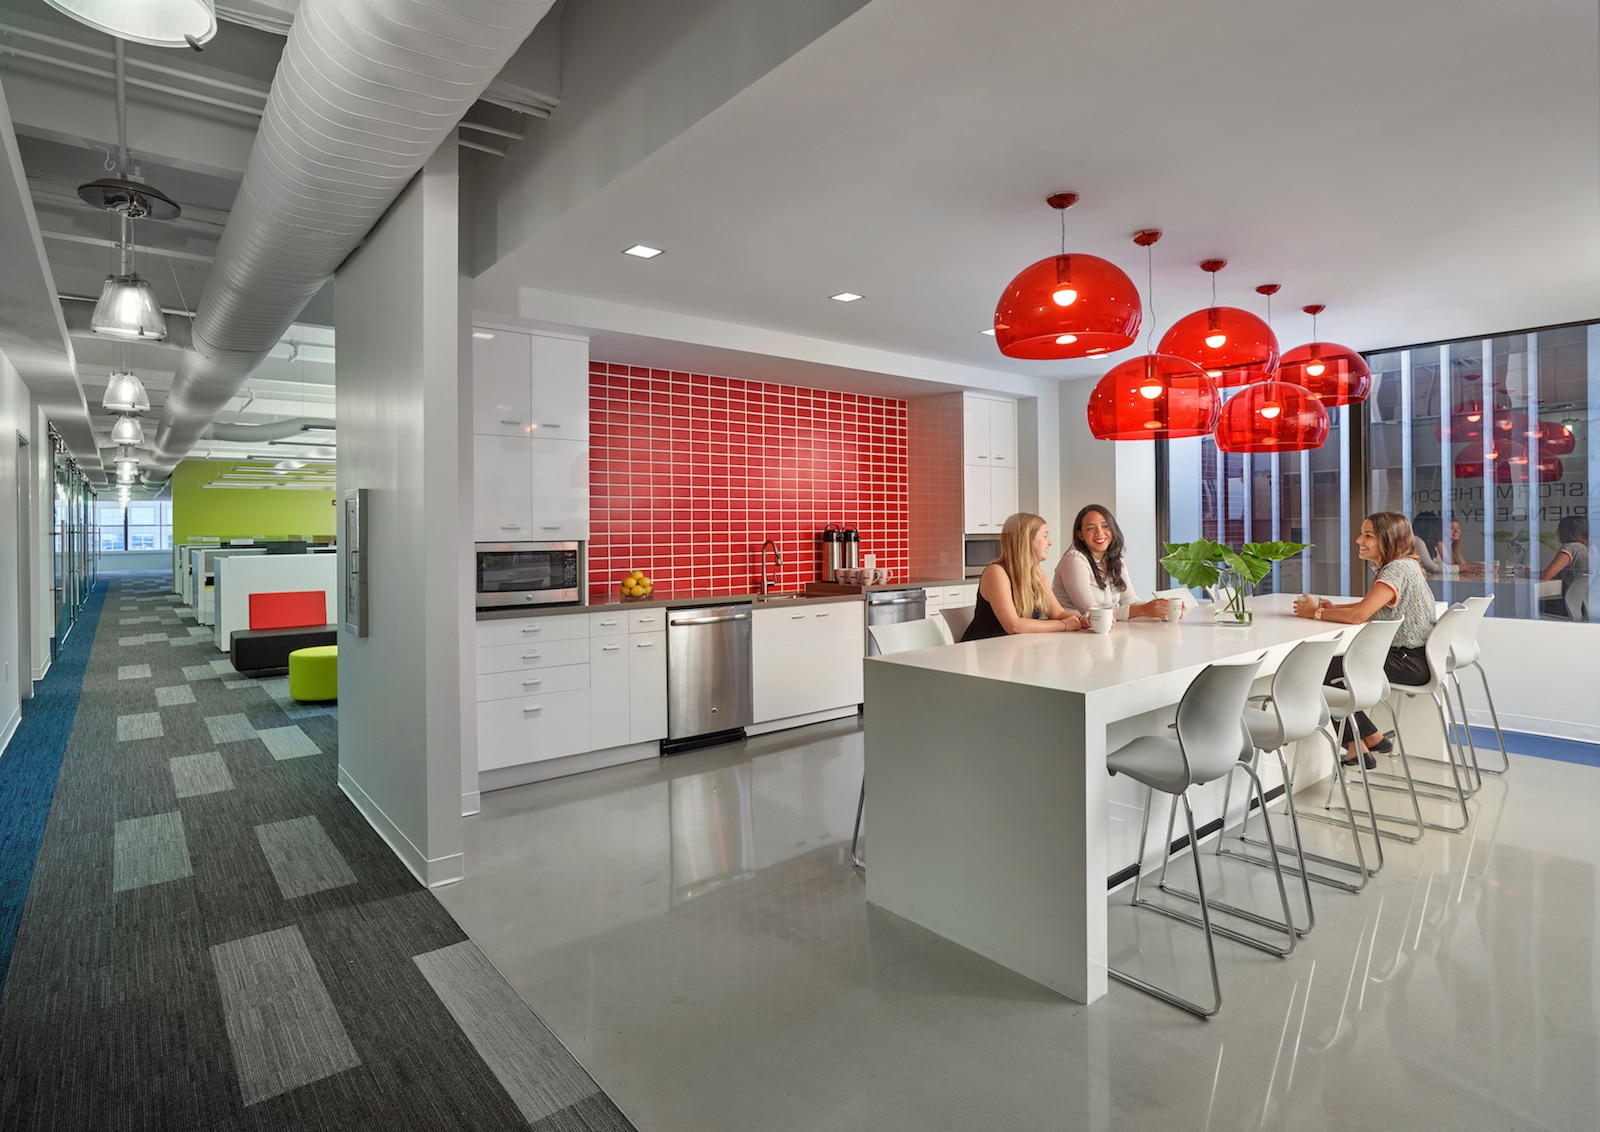 Stantec Flips The Script On Bland Office Kitchens